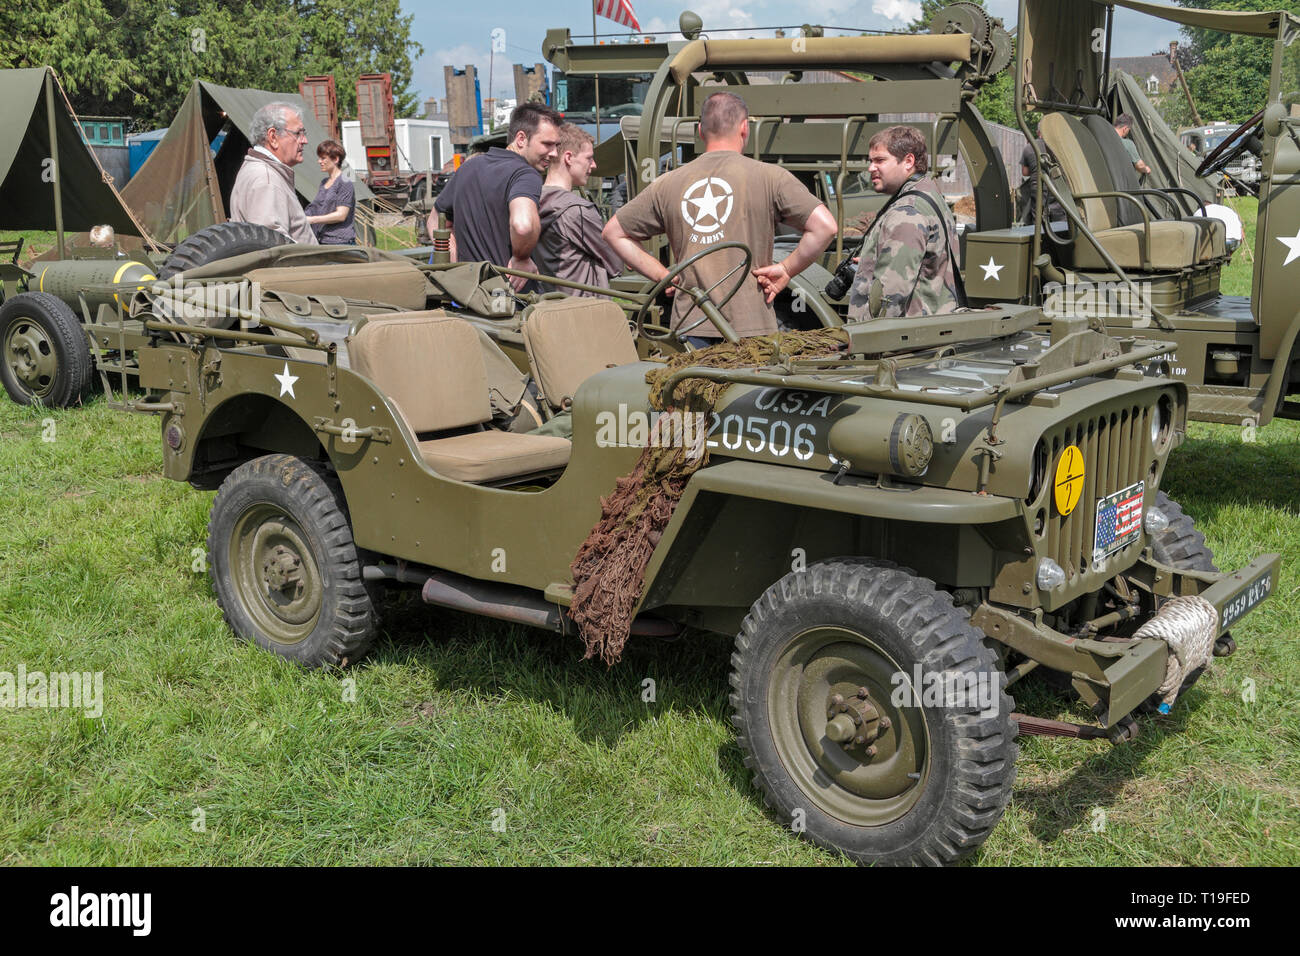 A Willys MB jeep, part of the D-Day 70th Anniversary events, re-enactors and vehicle displays in Sainte-Mère-Église, Normandy, France in June 2014. Stock Photo